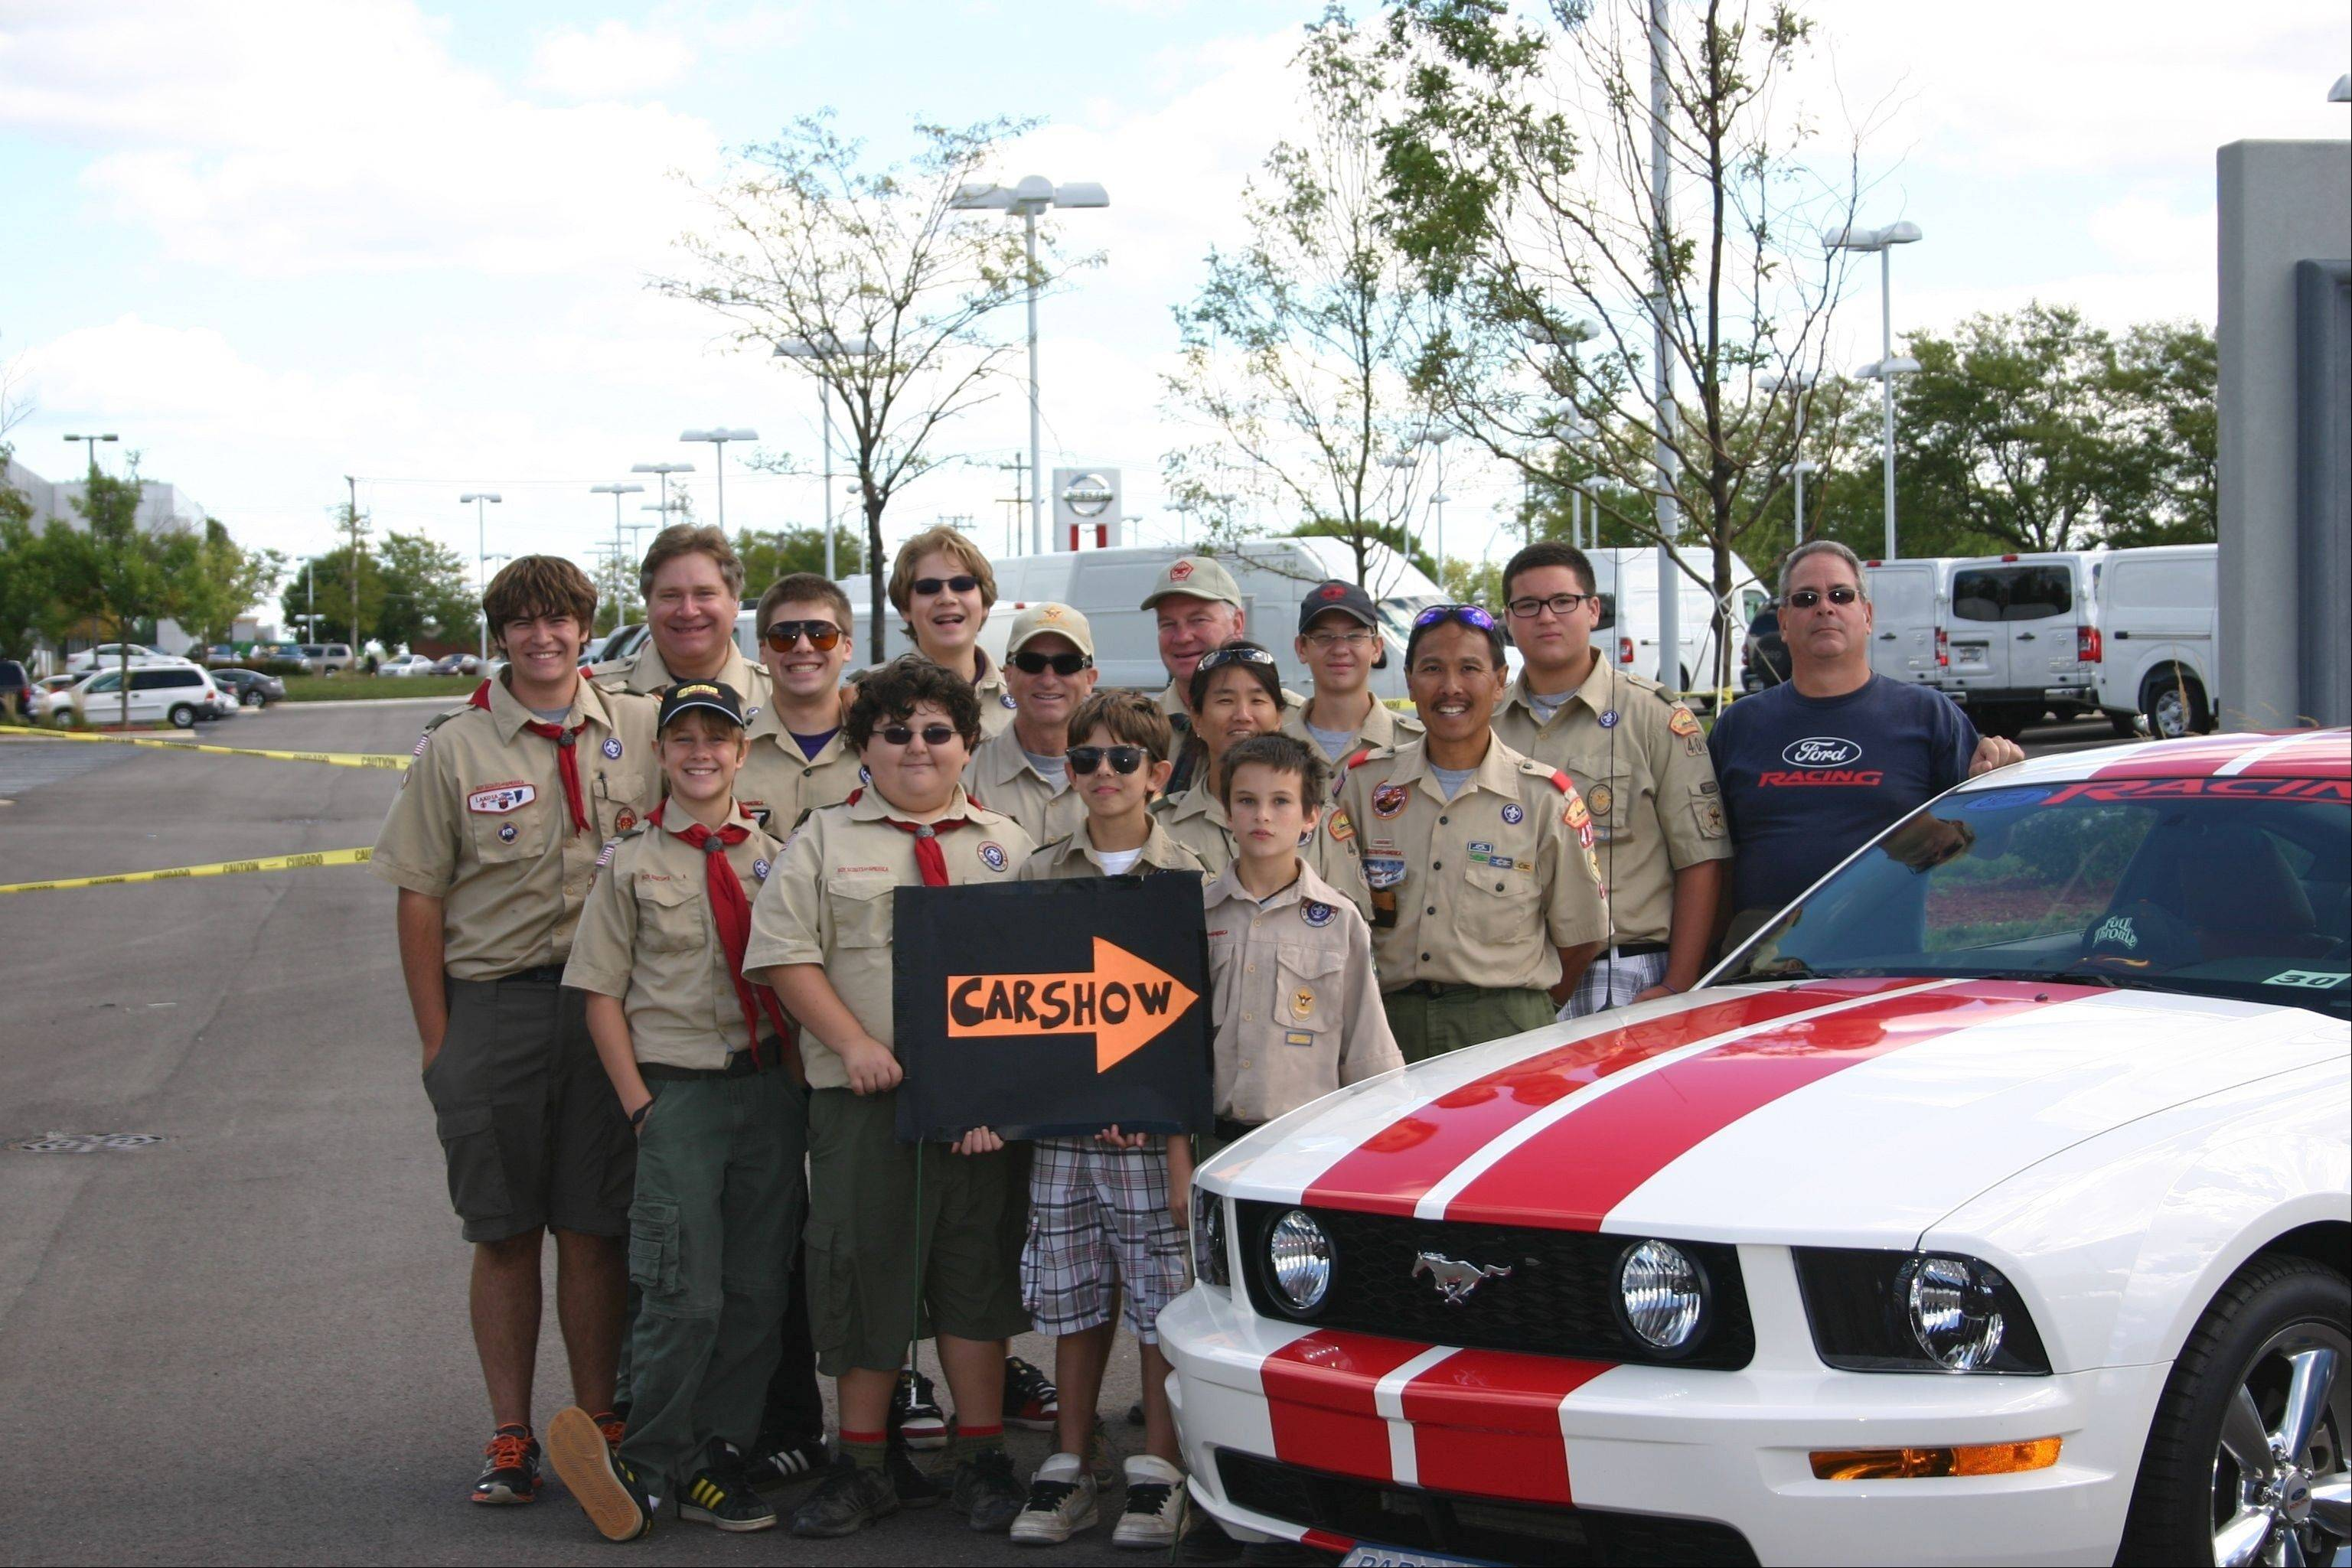 Volunteers from Boy Scout Troop 401, Buffalo Grove, helped to make Kevin MacDonald's Eagle Scout Car Show/Food Drive a huge success. The event netted over 800 food items and $300 for the St. Edna Food Pantry.